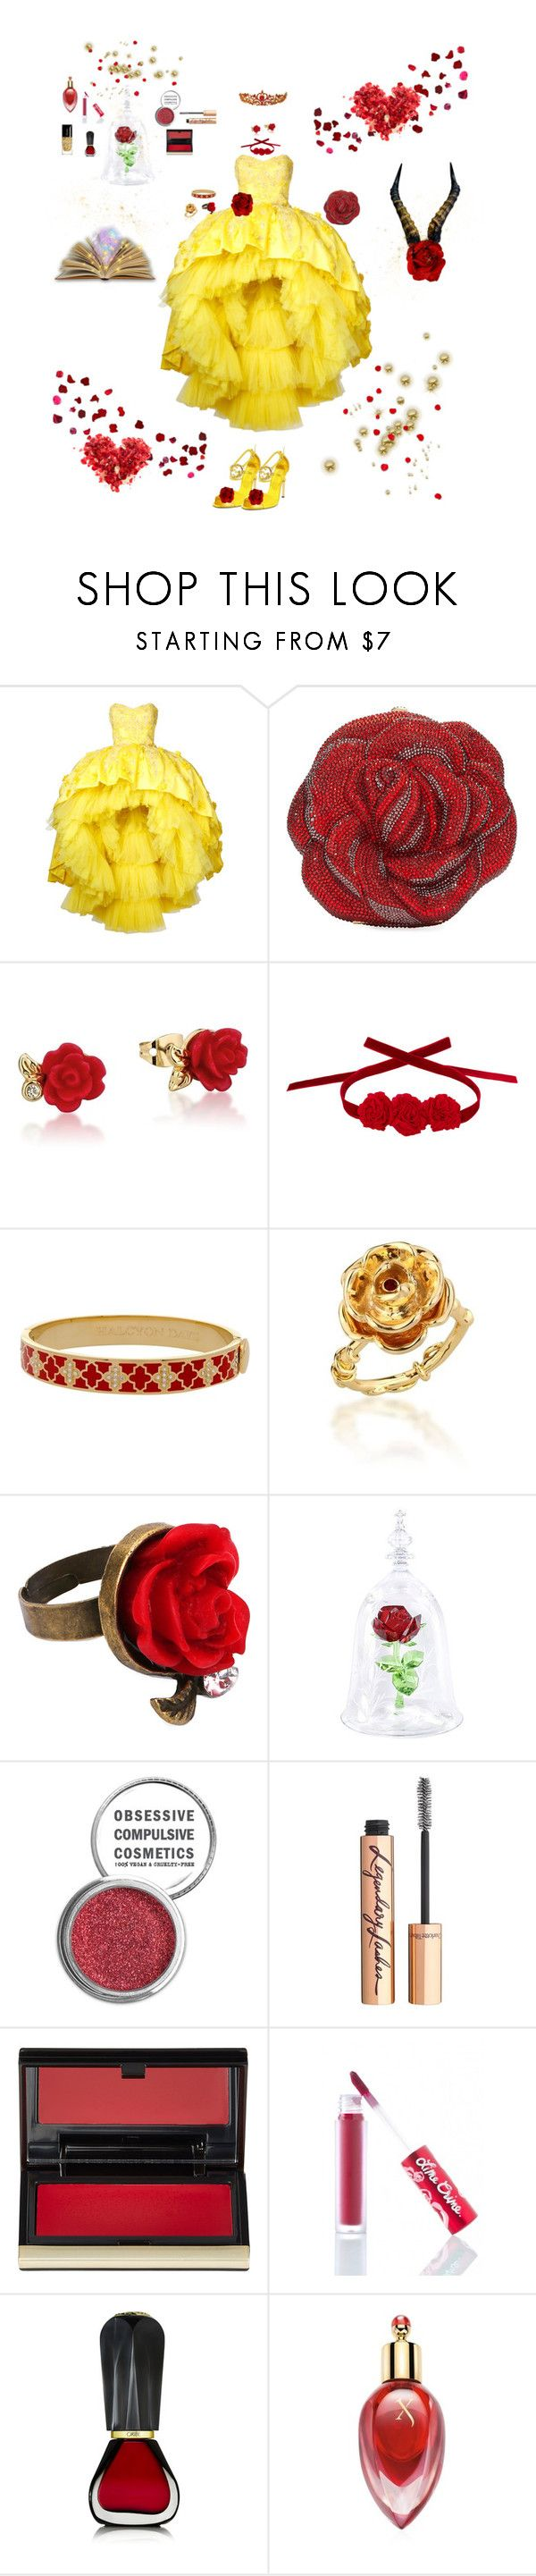 """""""Best of Beauty"""" by blackmagicmomma ❤ liked on Polyvore featuring Mikael D, Gucci, Judith Leiber, Disney, Vjera Vilicnik, Halcyon Days, Obsessive Compulsive Cosmetics, Charlotte Tilbury, Kevyn Aucoin and Lime Crime"""